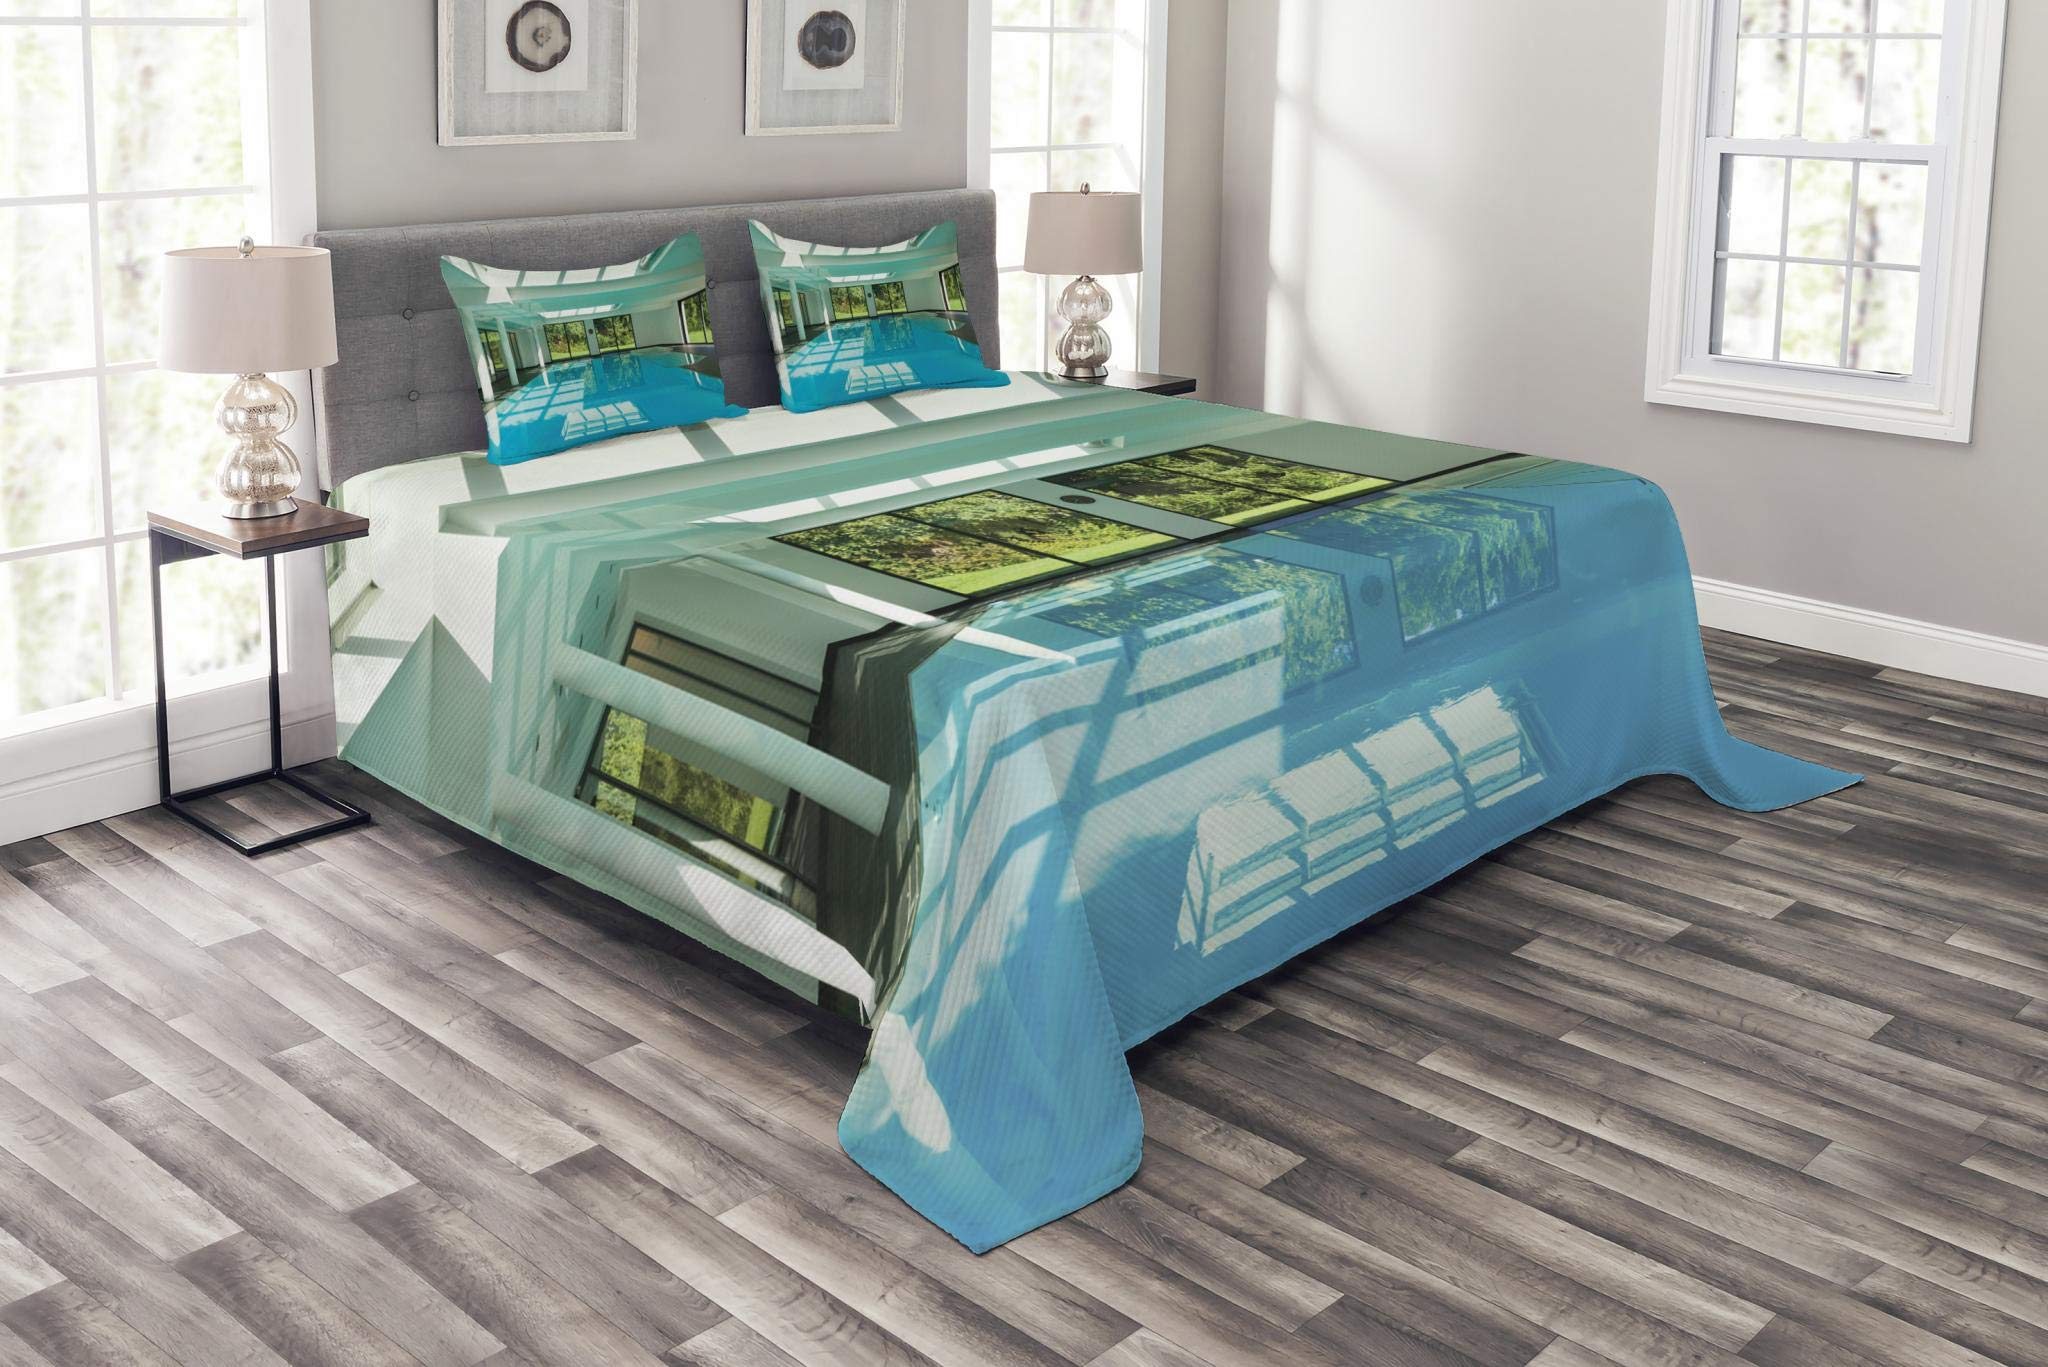 Lunarable Spa Bedspread Set Queen Size, Indoor Swimming Pool of a Modern House with Spa Window Residential Interior Design, Decorative Quilted 3 Piece Coverlet Set with 2 Pillow Shams, Mint Aqua Green